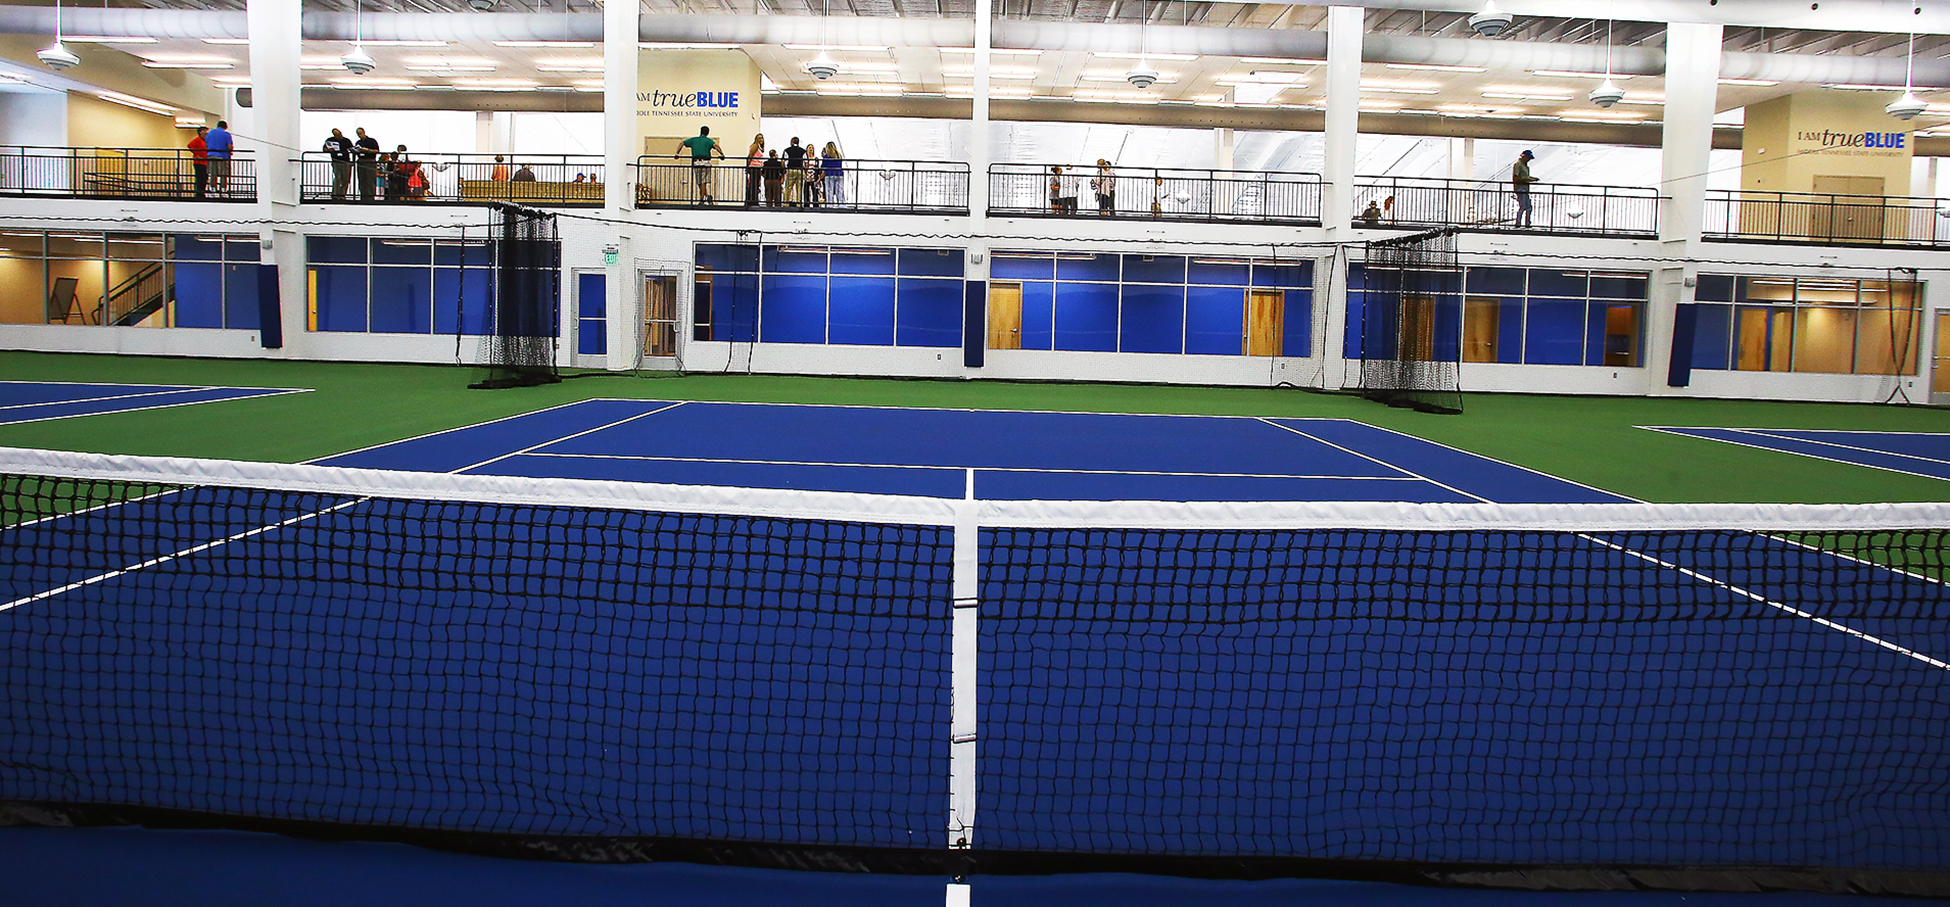 Open house for the new indoor tennis facility in Old Fort Park was packed